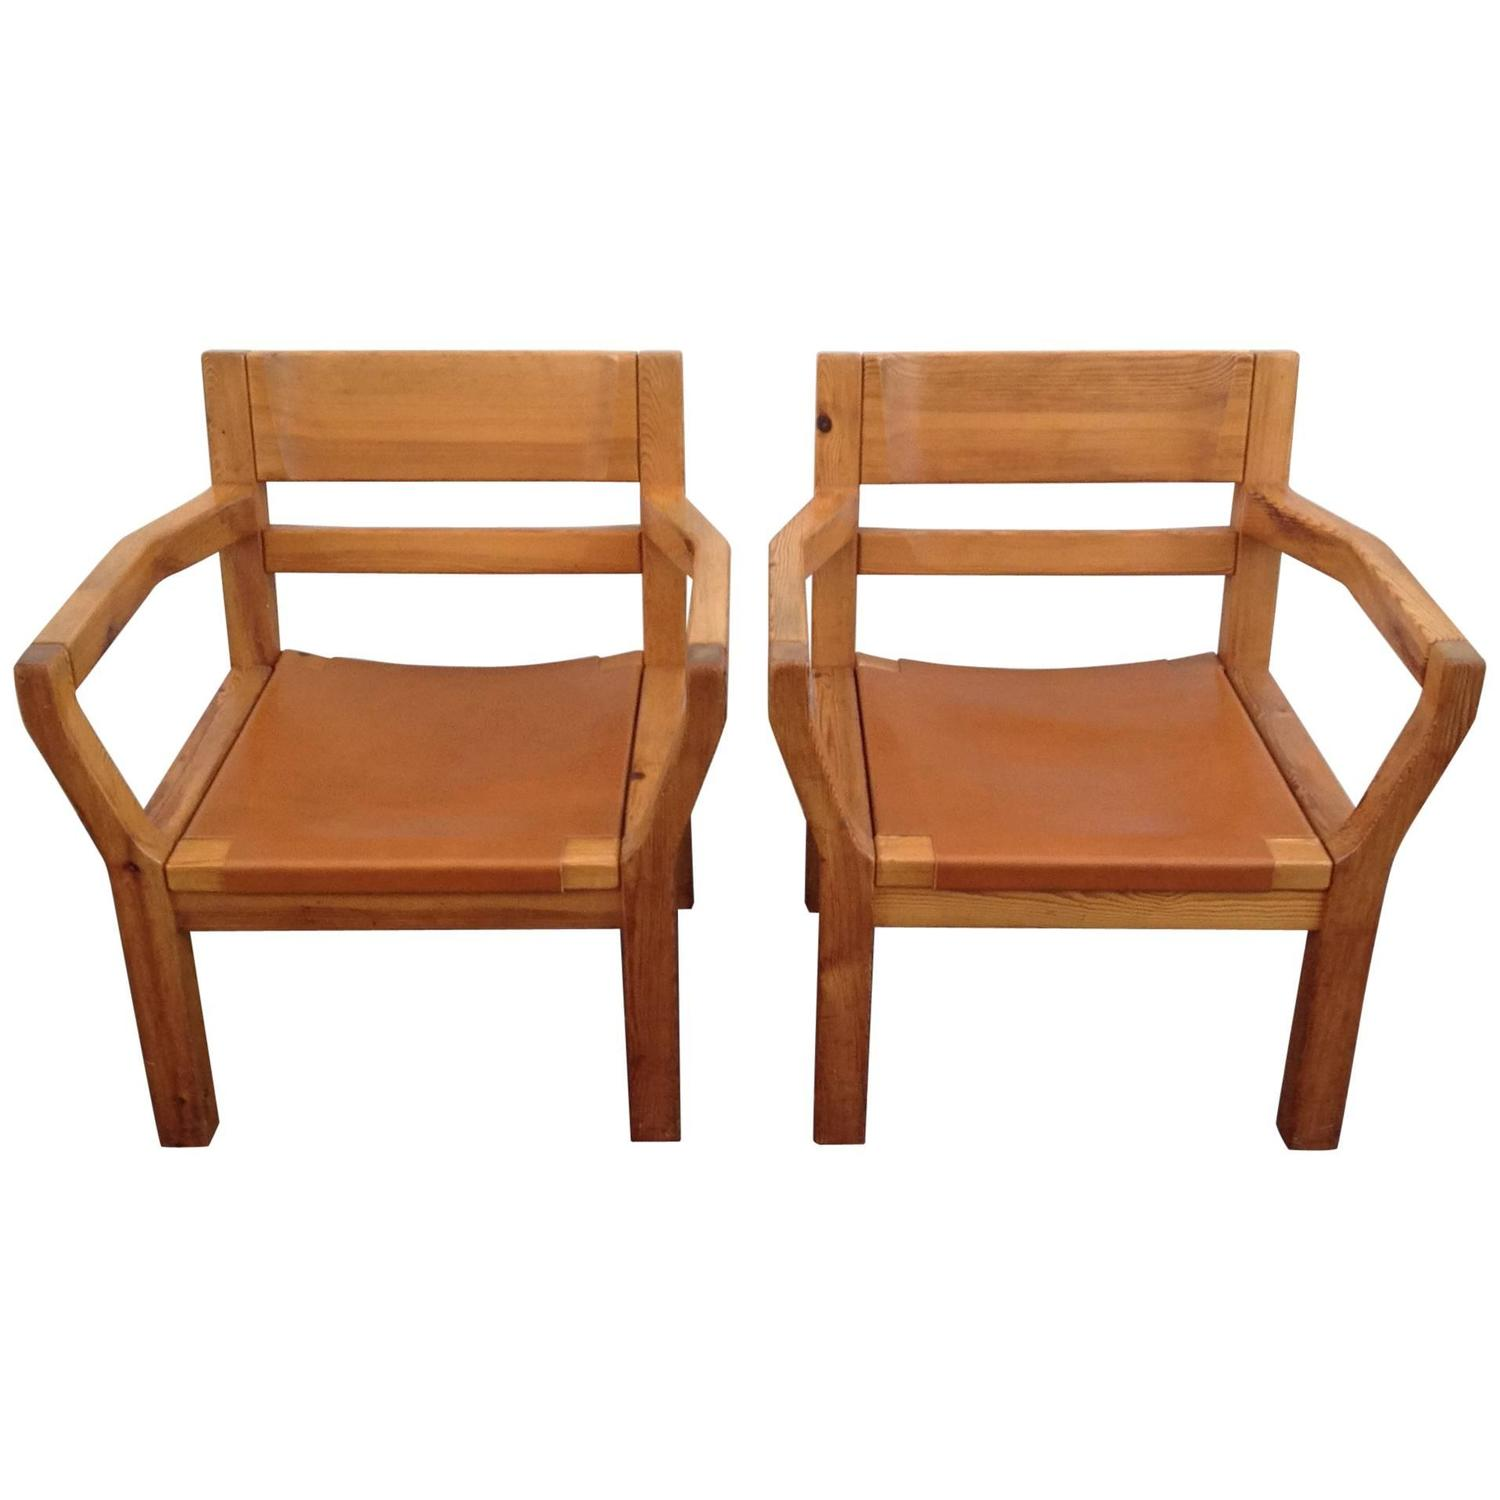 Comfortable chairs for sale 28 images comfortable easy for Comfortable chairs for sale